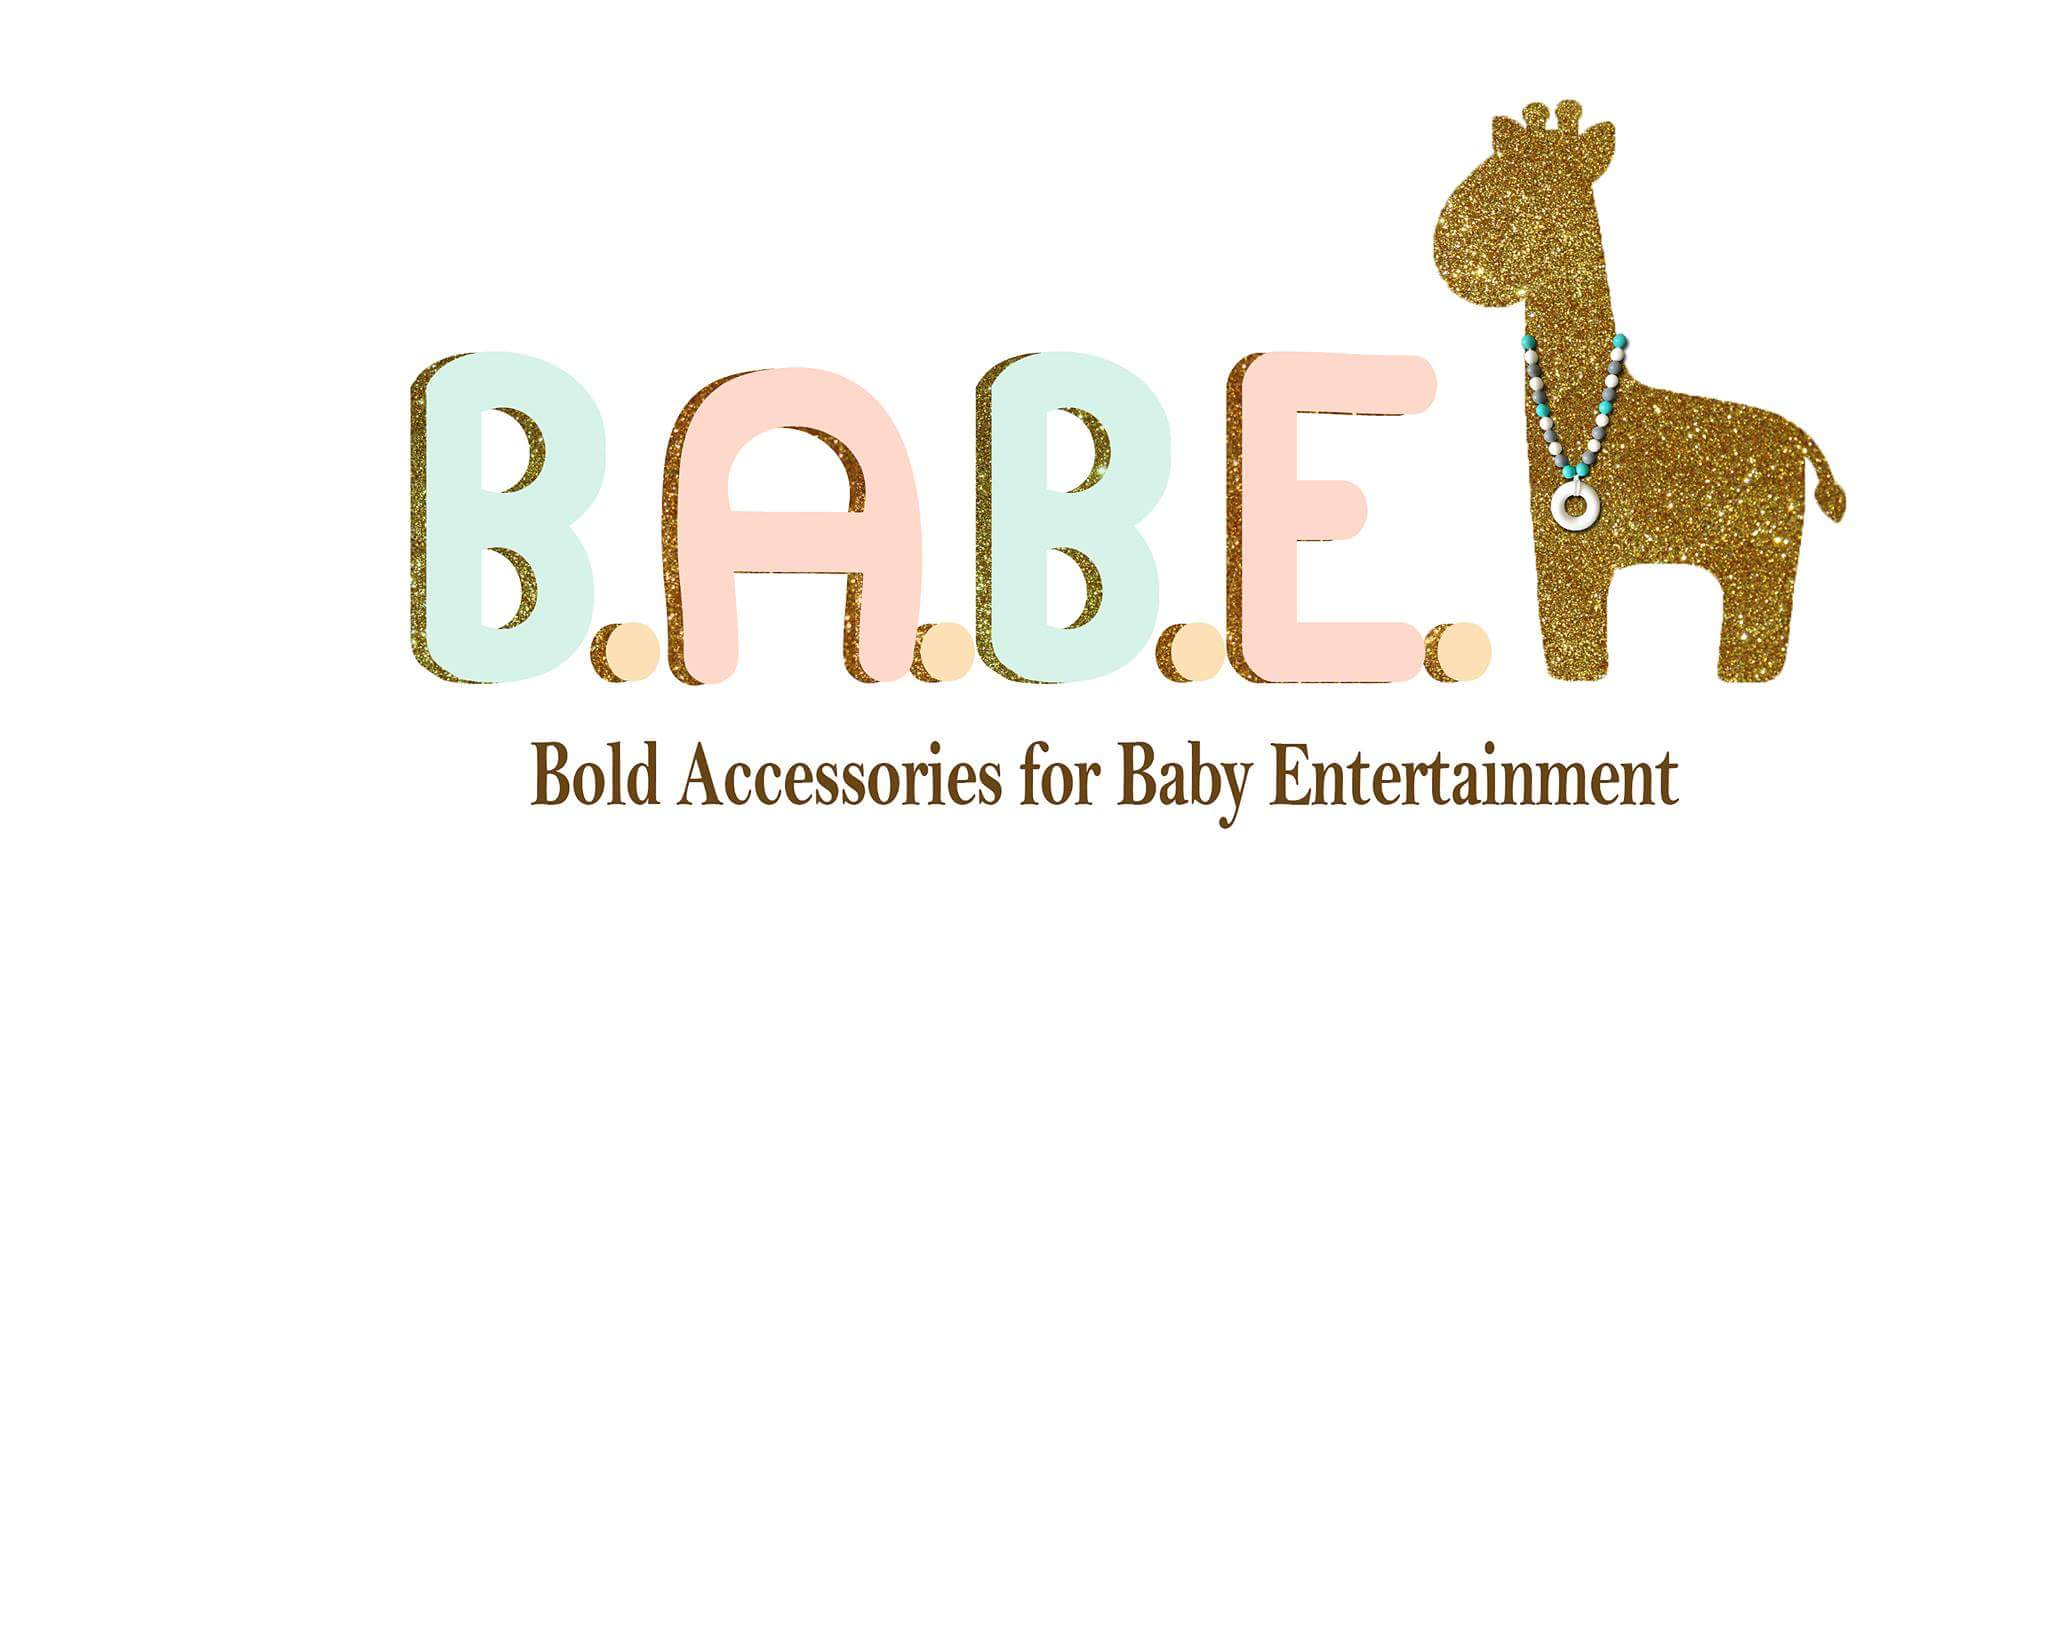 BABE Accessories NEW LOGO